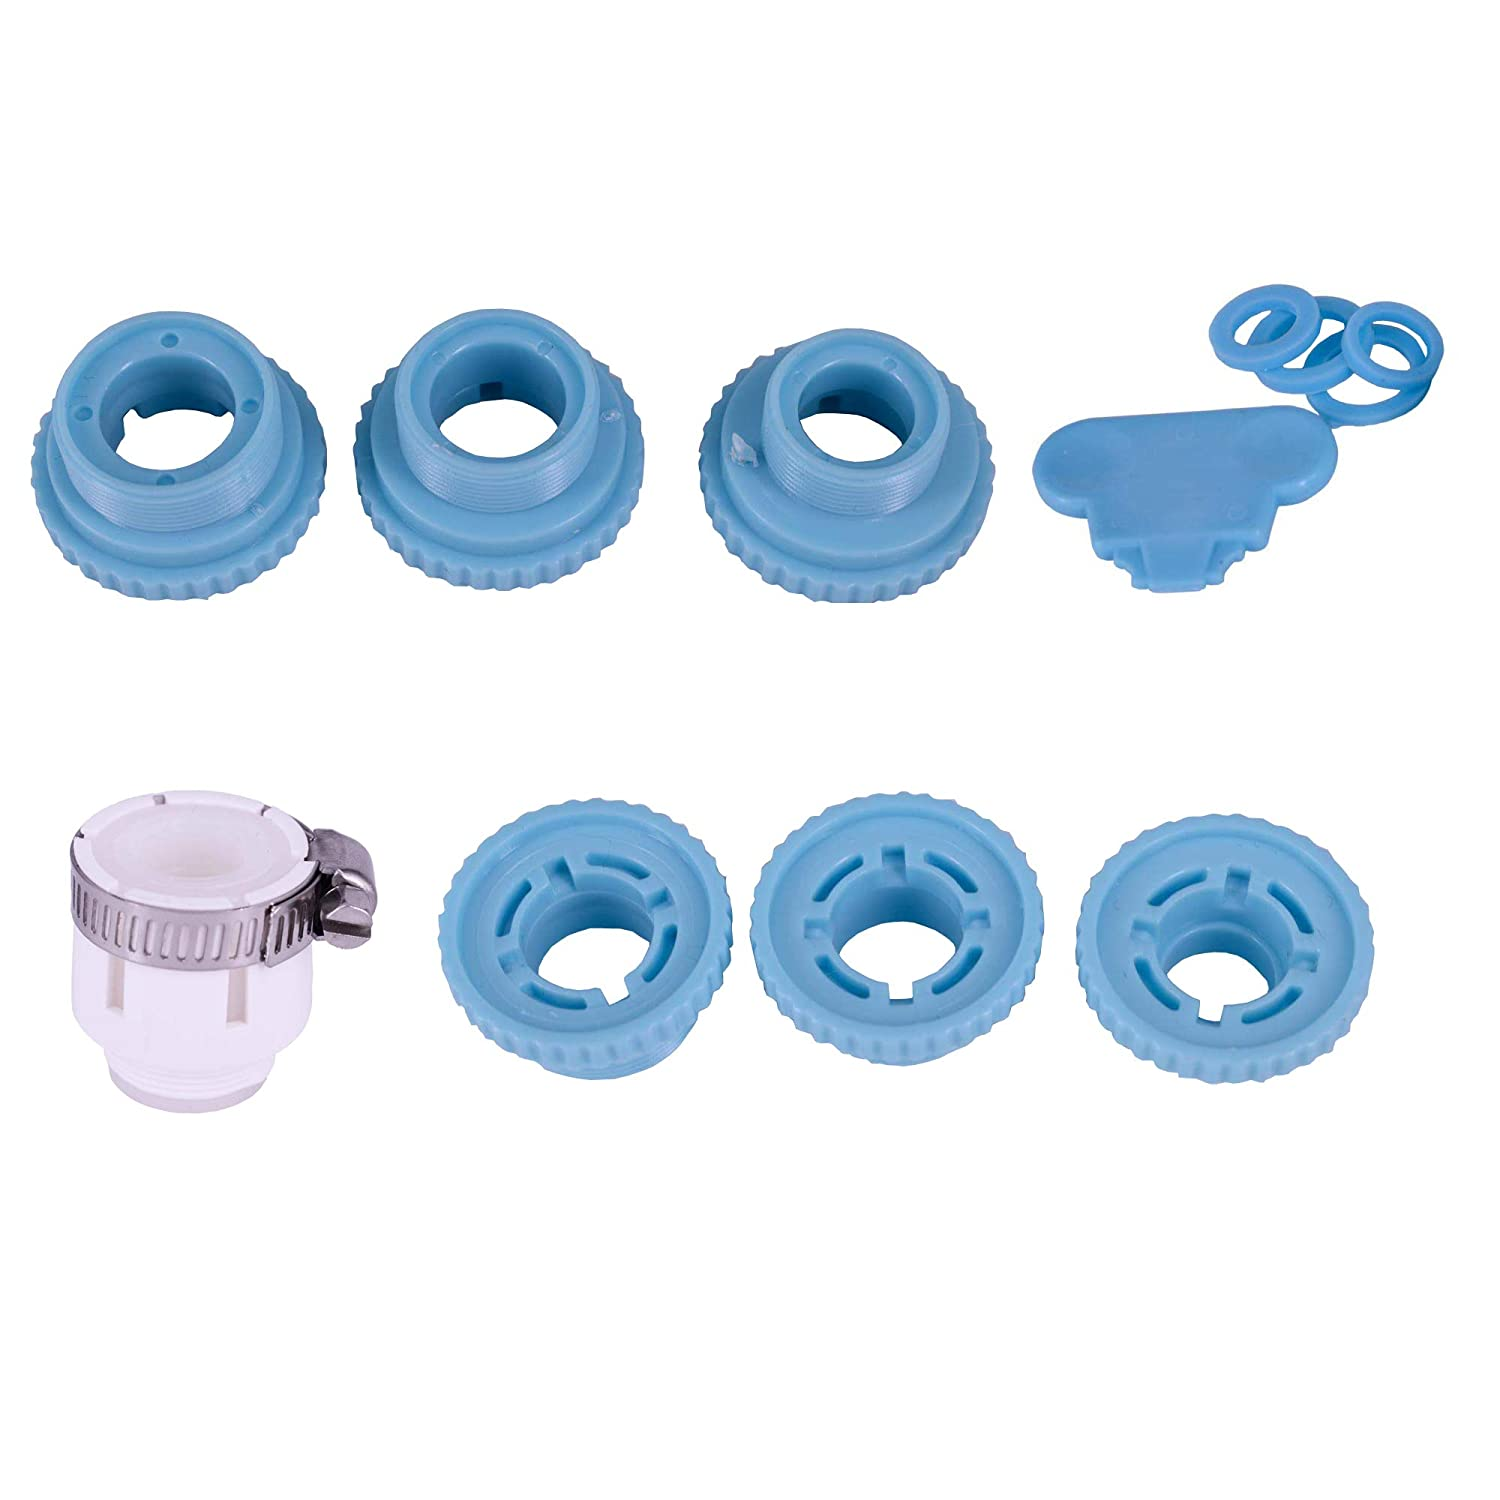 Alovexiong 8 Piece Female Faucet Adapter Kit Brass Aerator